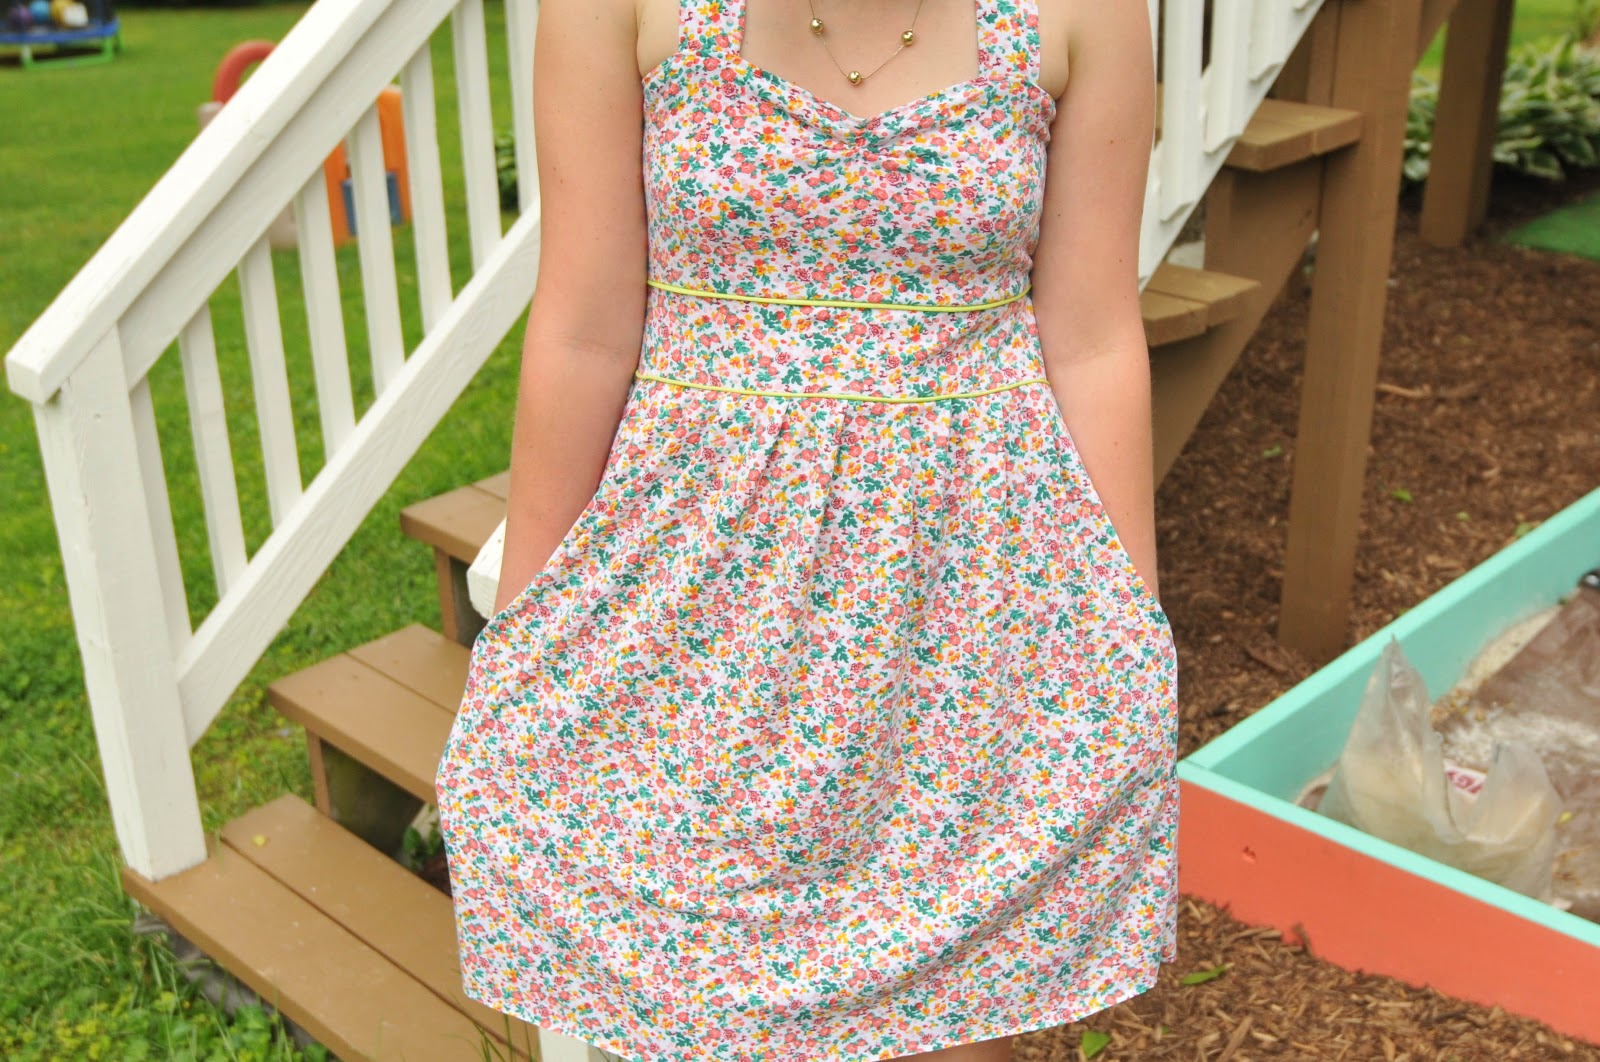 Two-many: Touch of Vintage Sundress